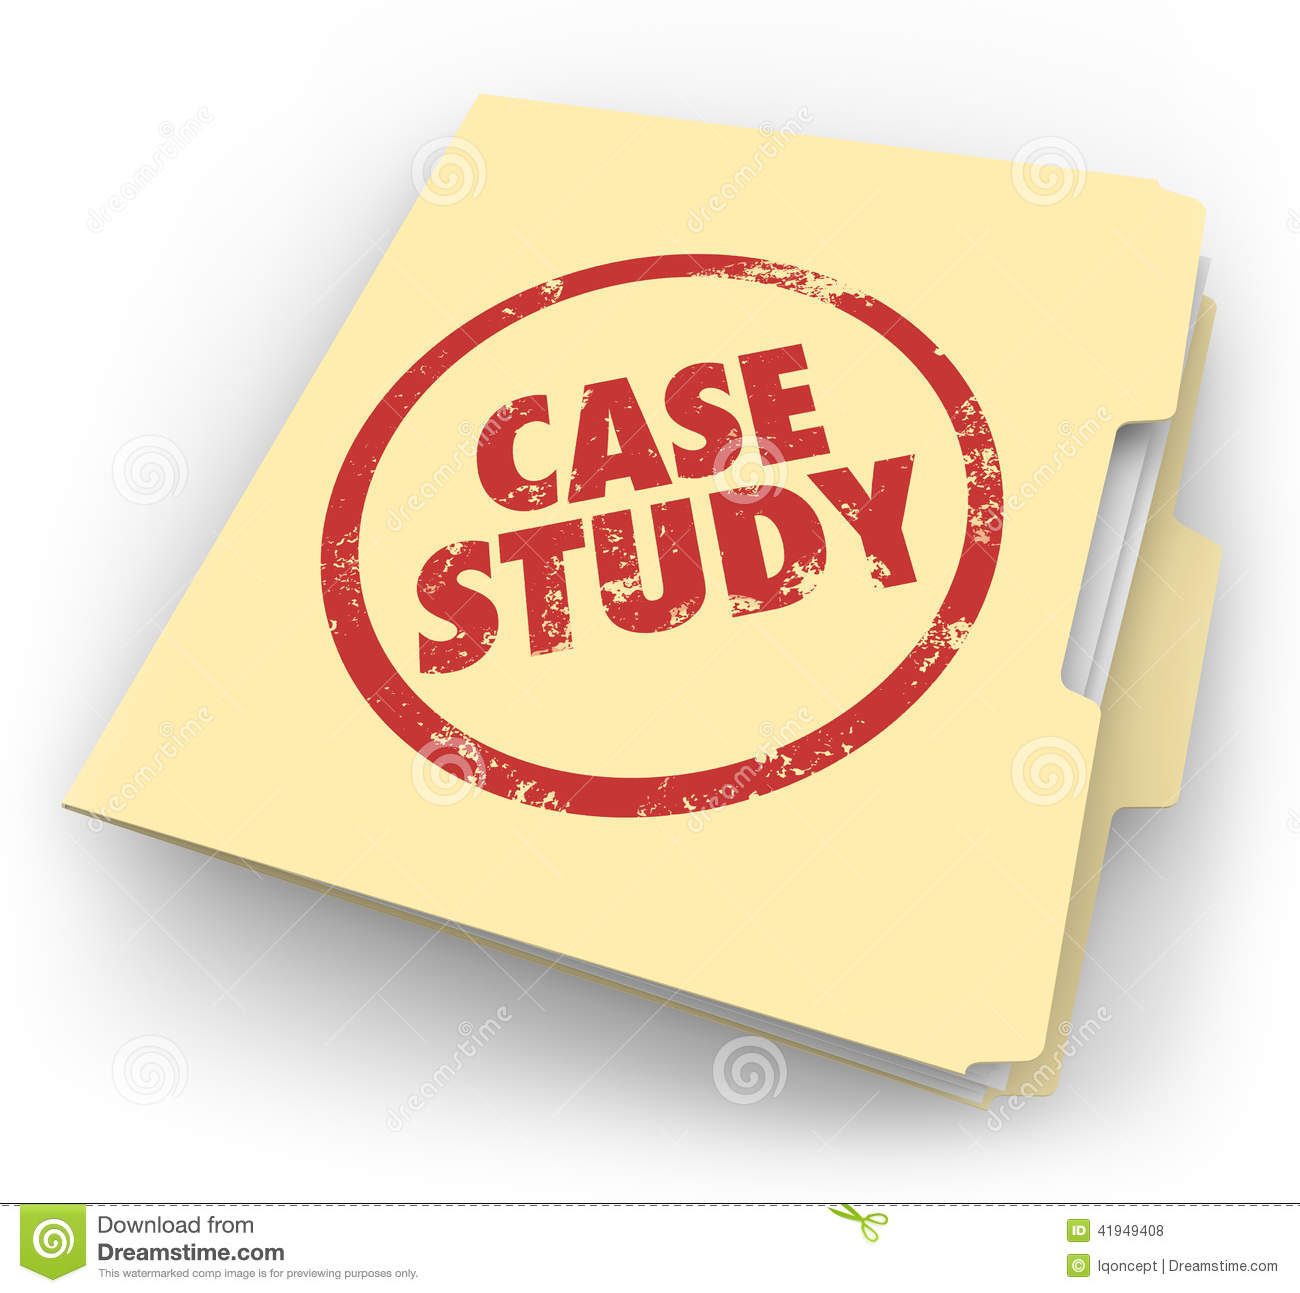 Case study clipart 10 » Clipart Station.